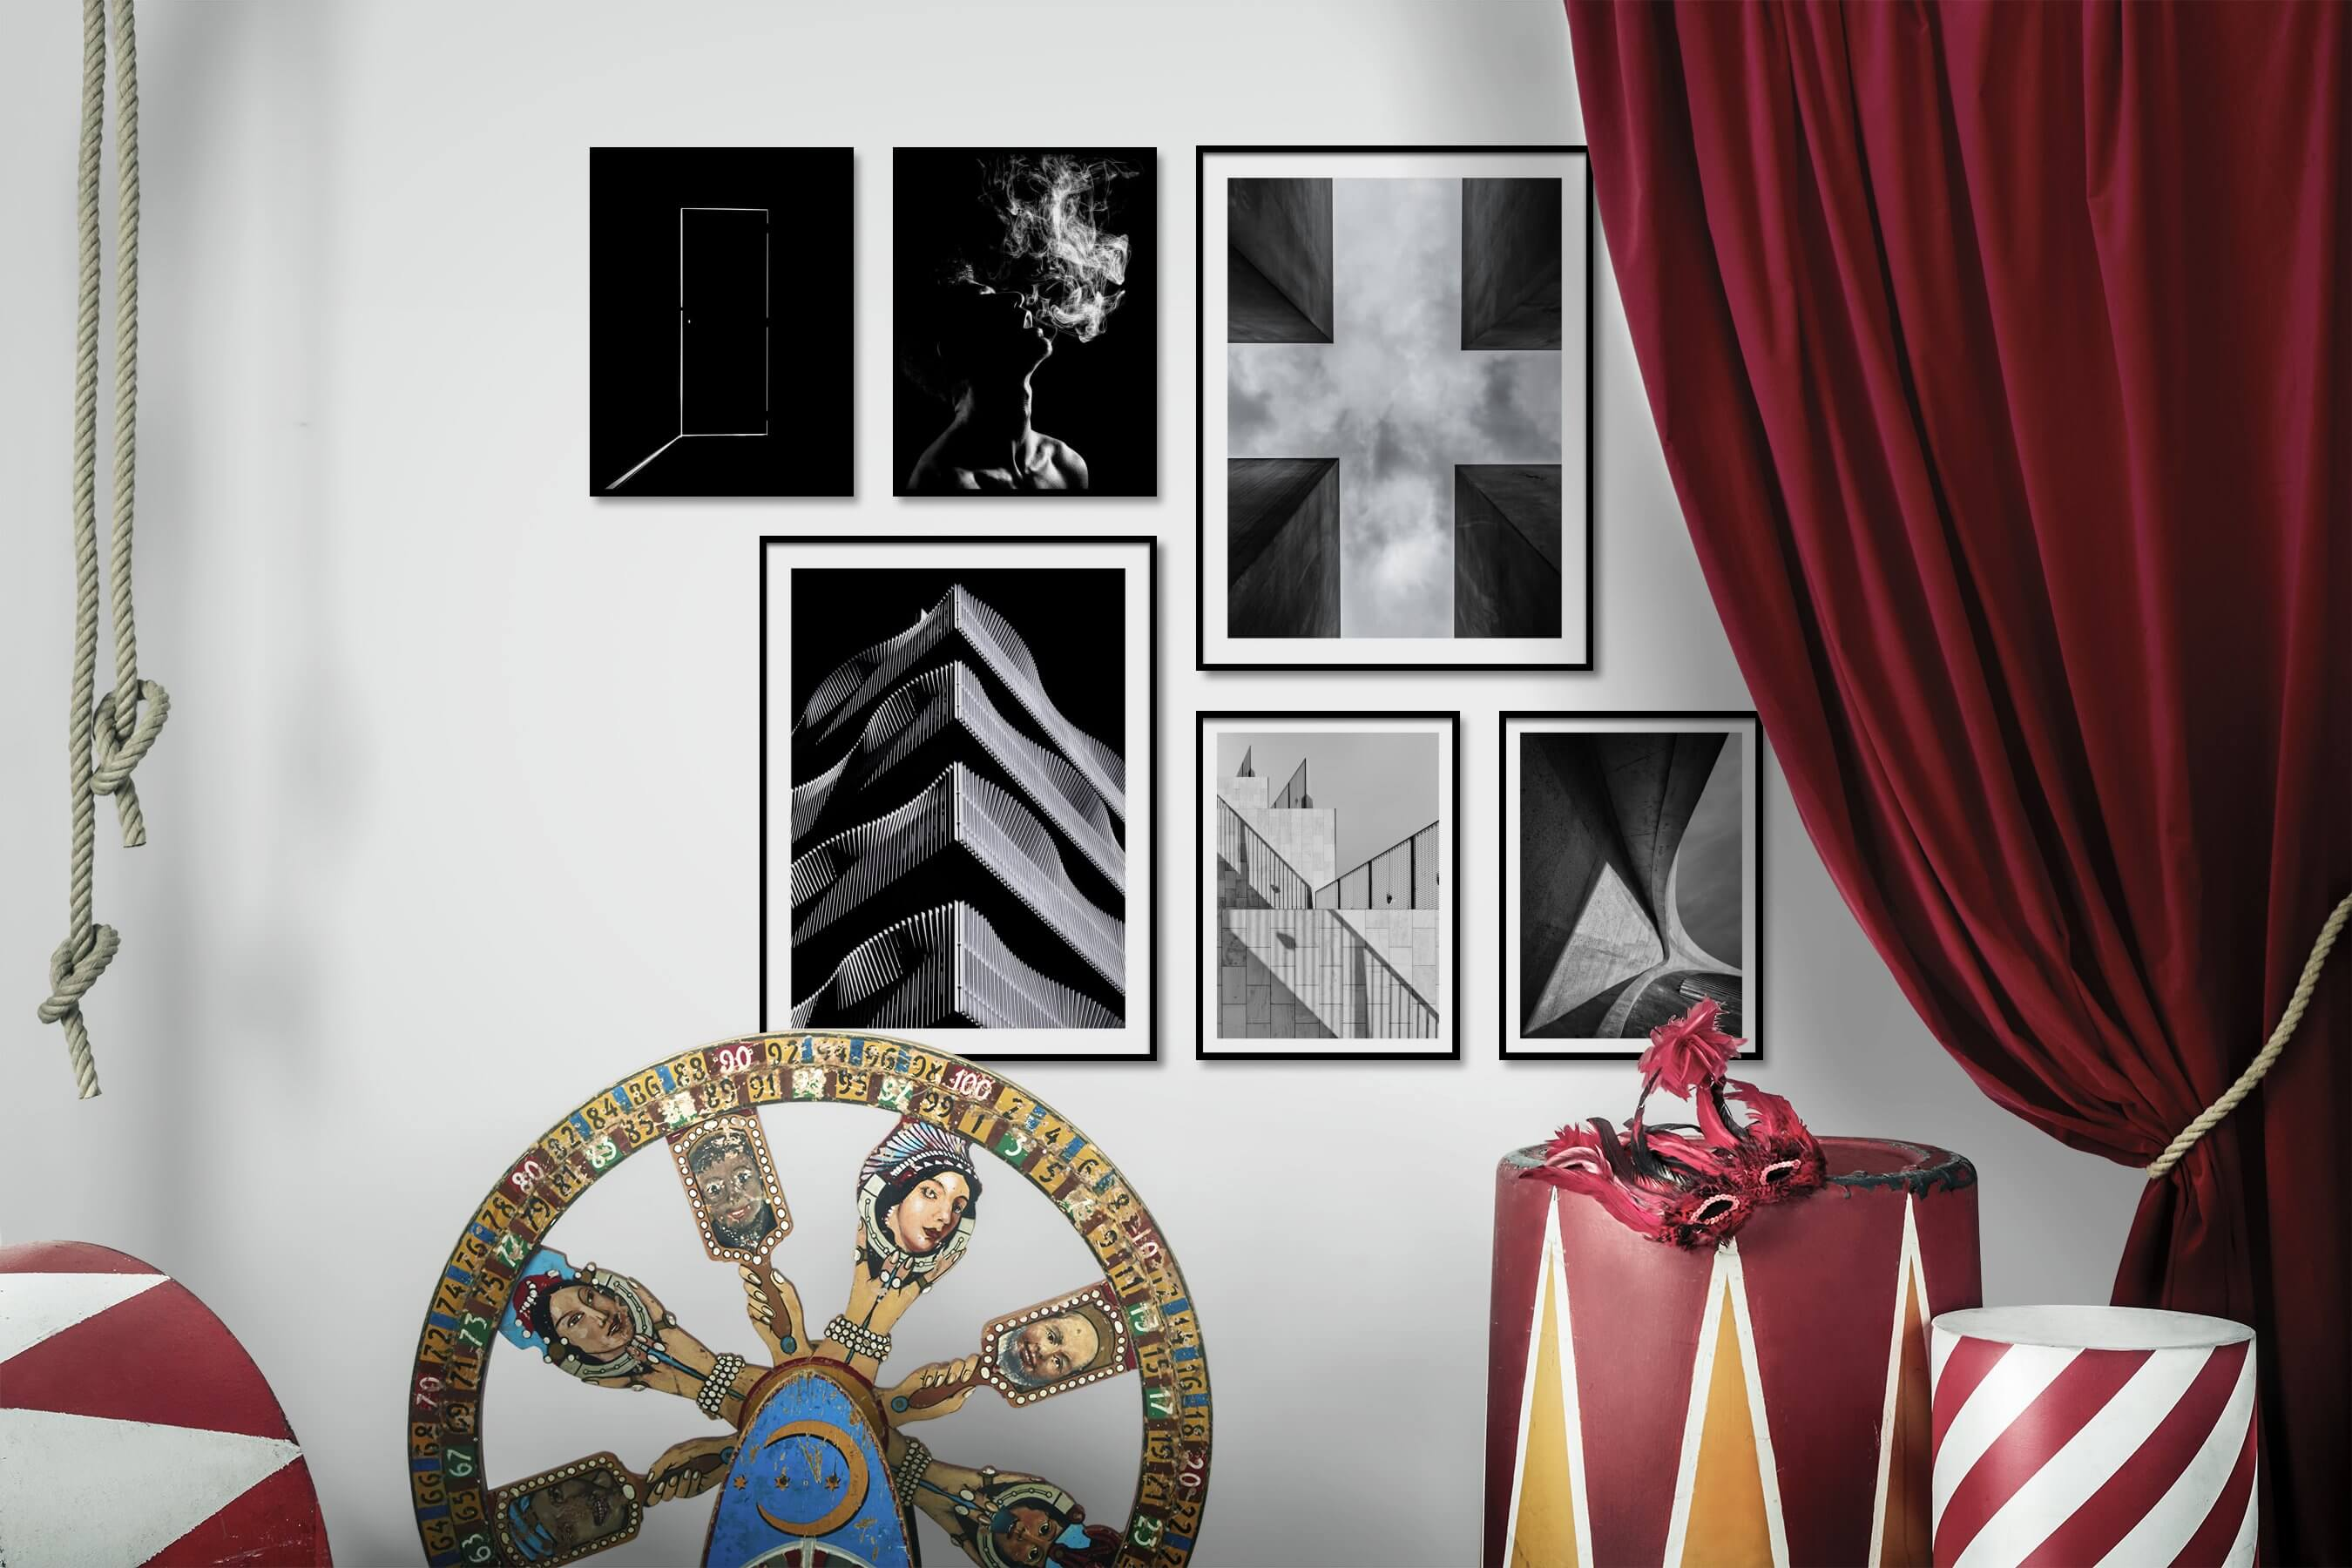 Gallery wall idea with six framed pictures arranged on a wall depicting Black & White, Dark Tones, For the Minimalist, Fashion & Beauty, and For the Moderate